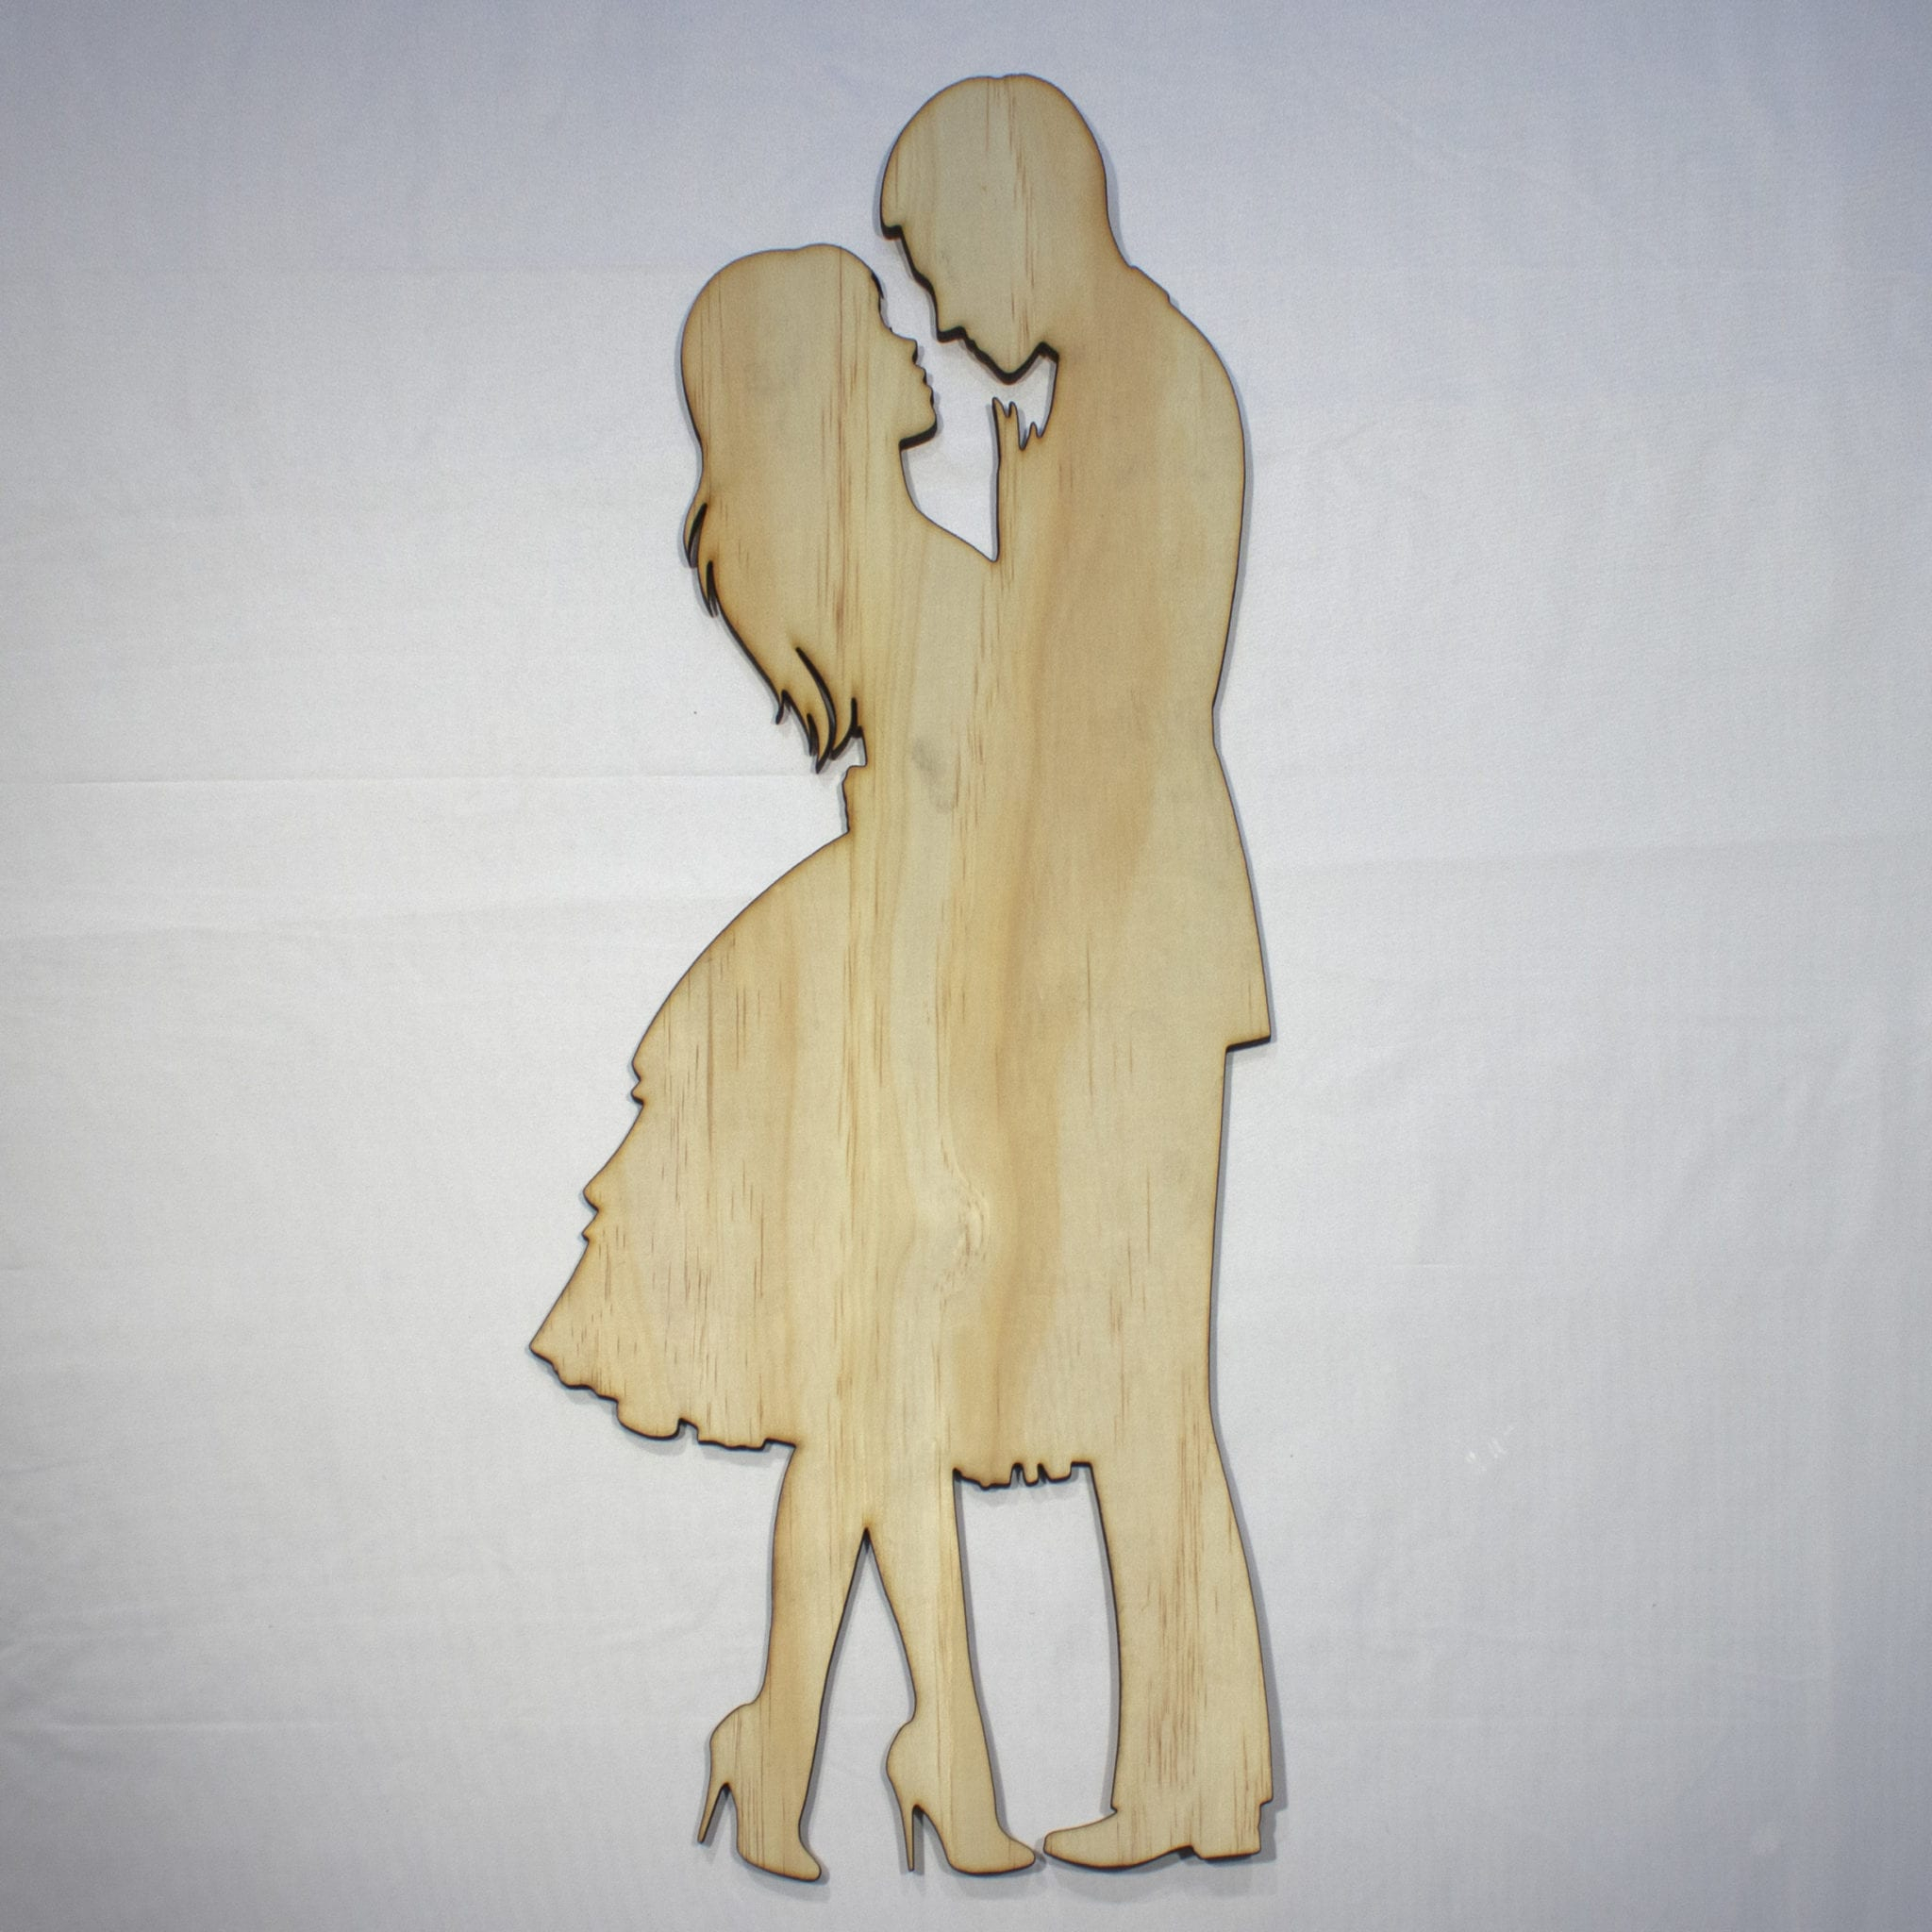 2020 Dancing Couple In Love 22In Tall Laser Cut Wood Silhouette Wall Art Within Let Whatever You Do Today Be Enough Wood Wall Decor (View 1 of 20)